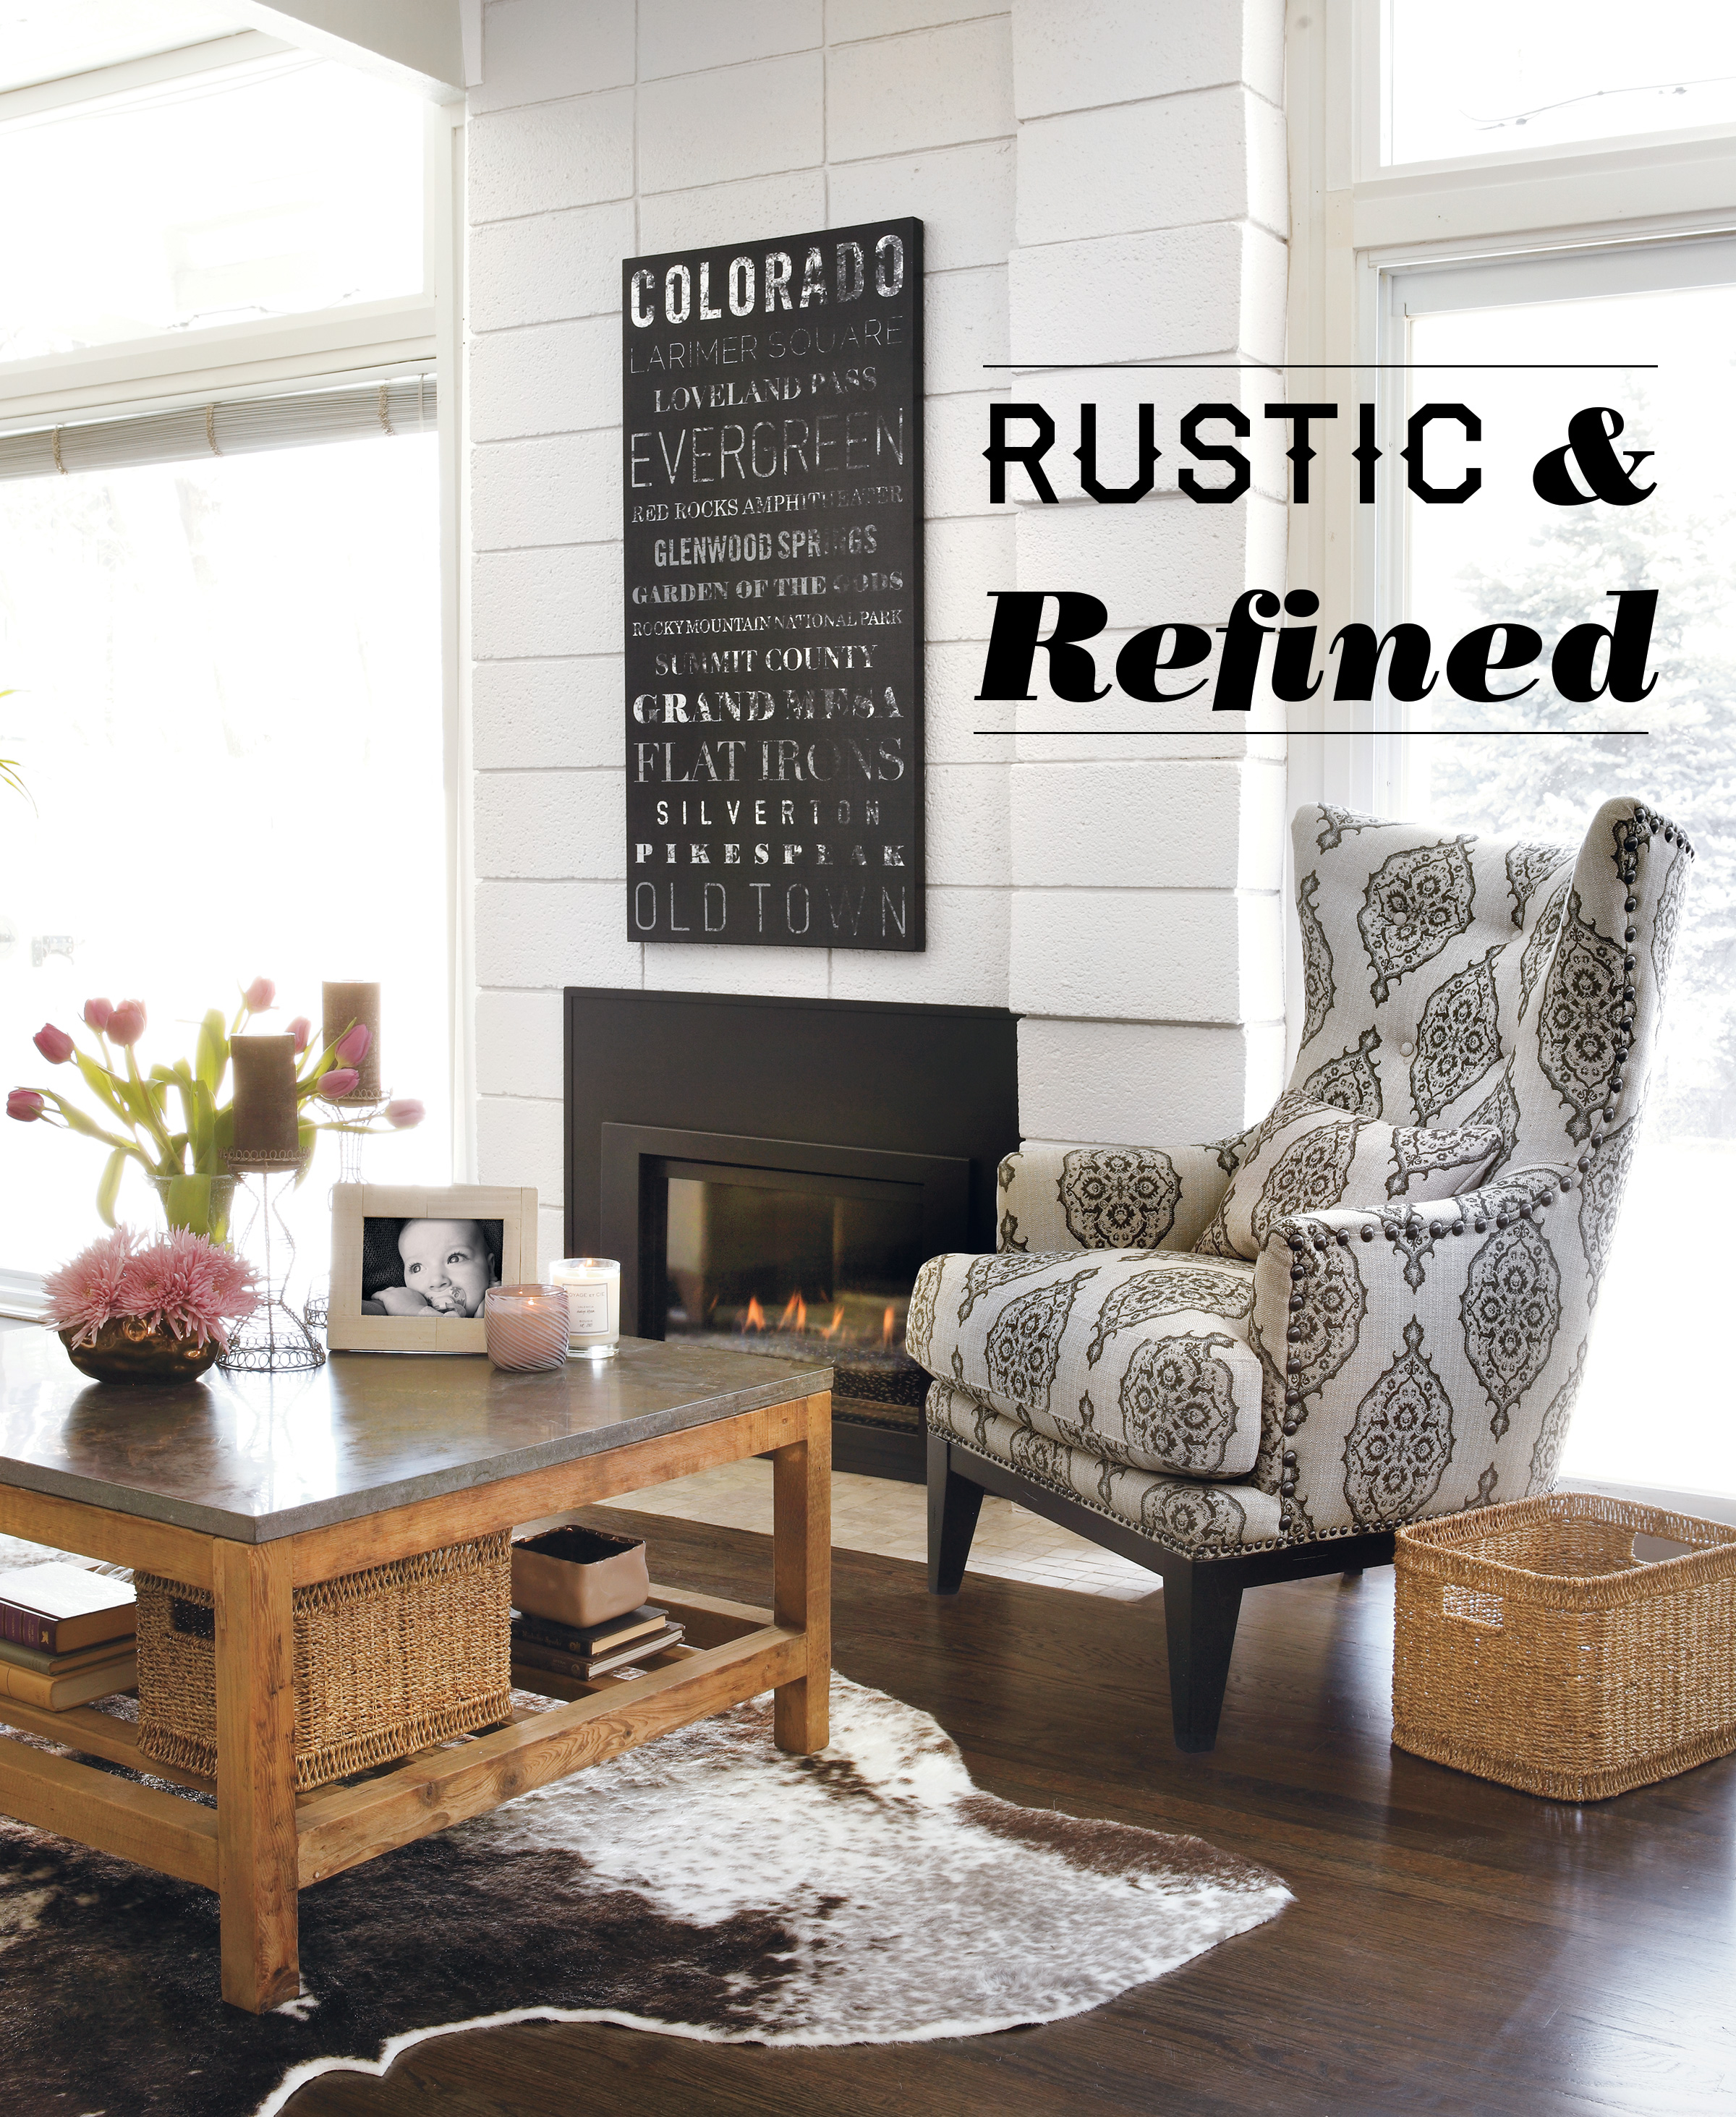 Home Decor Rustic And Refined Is Here